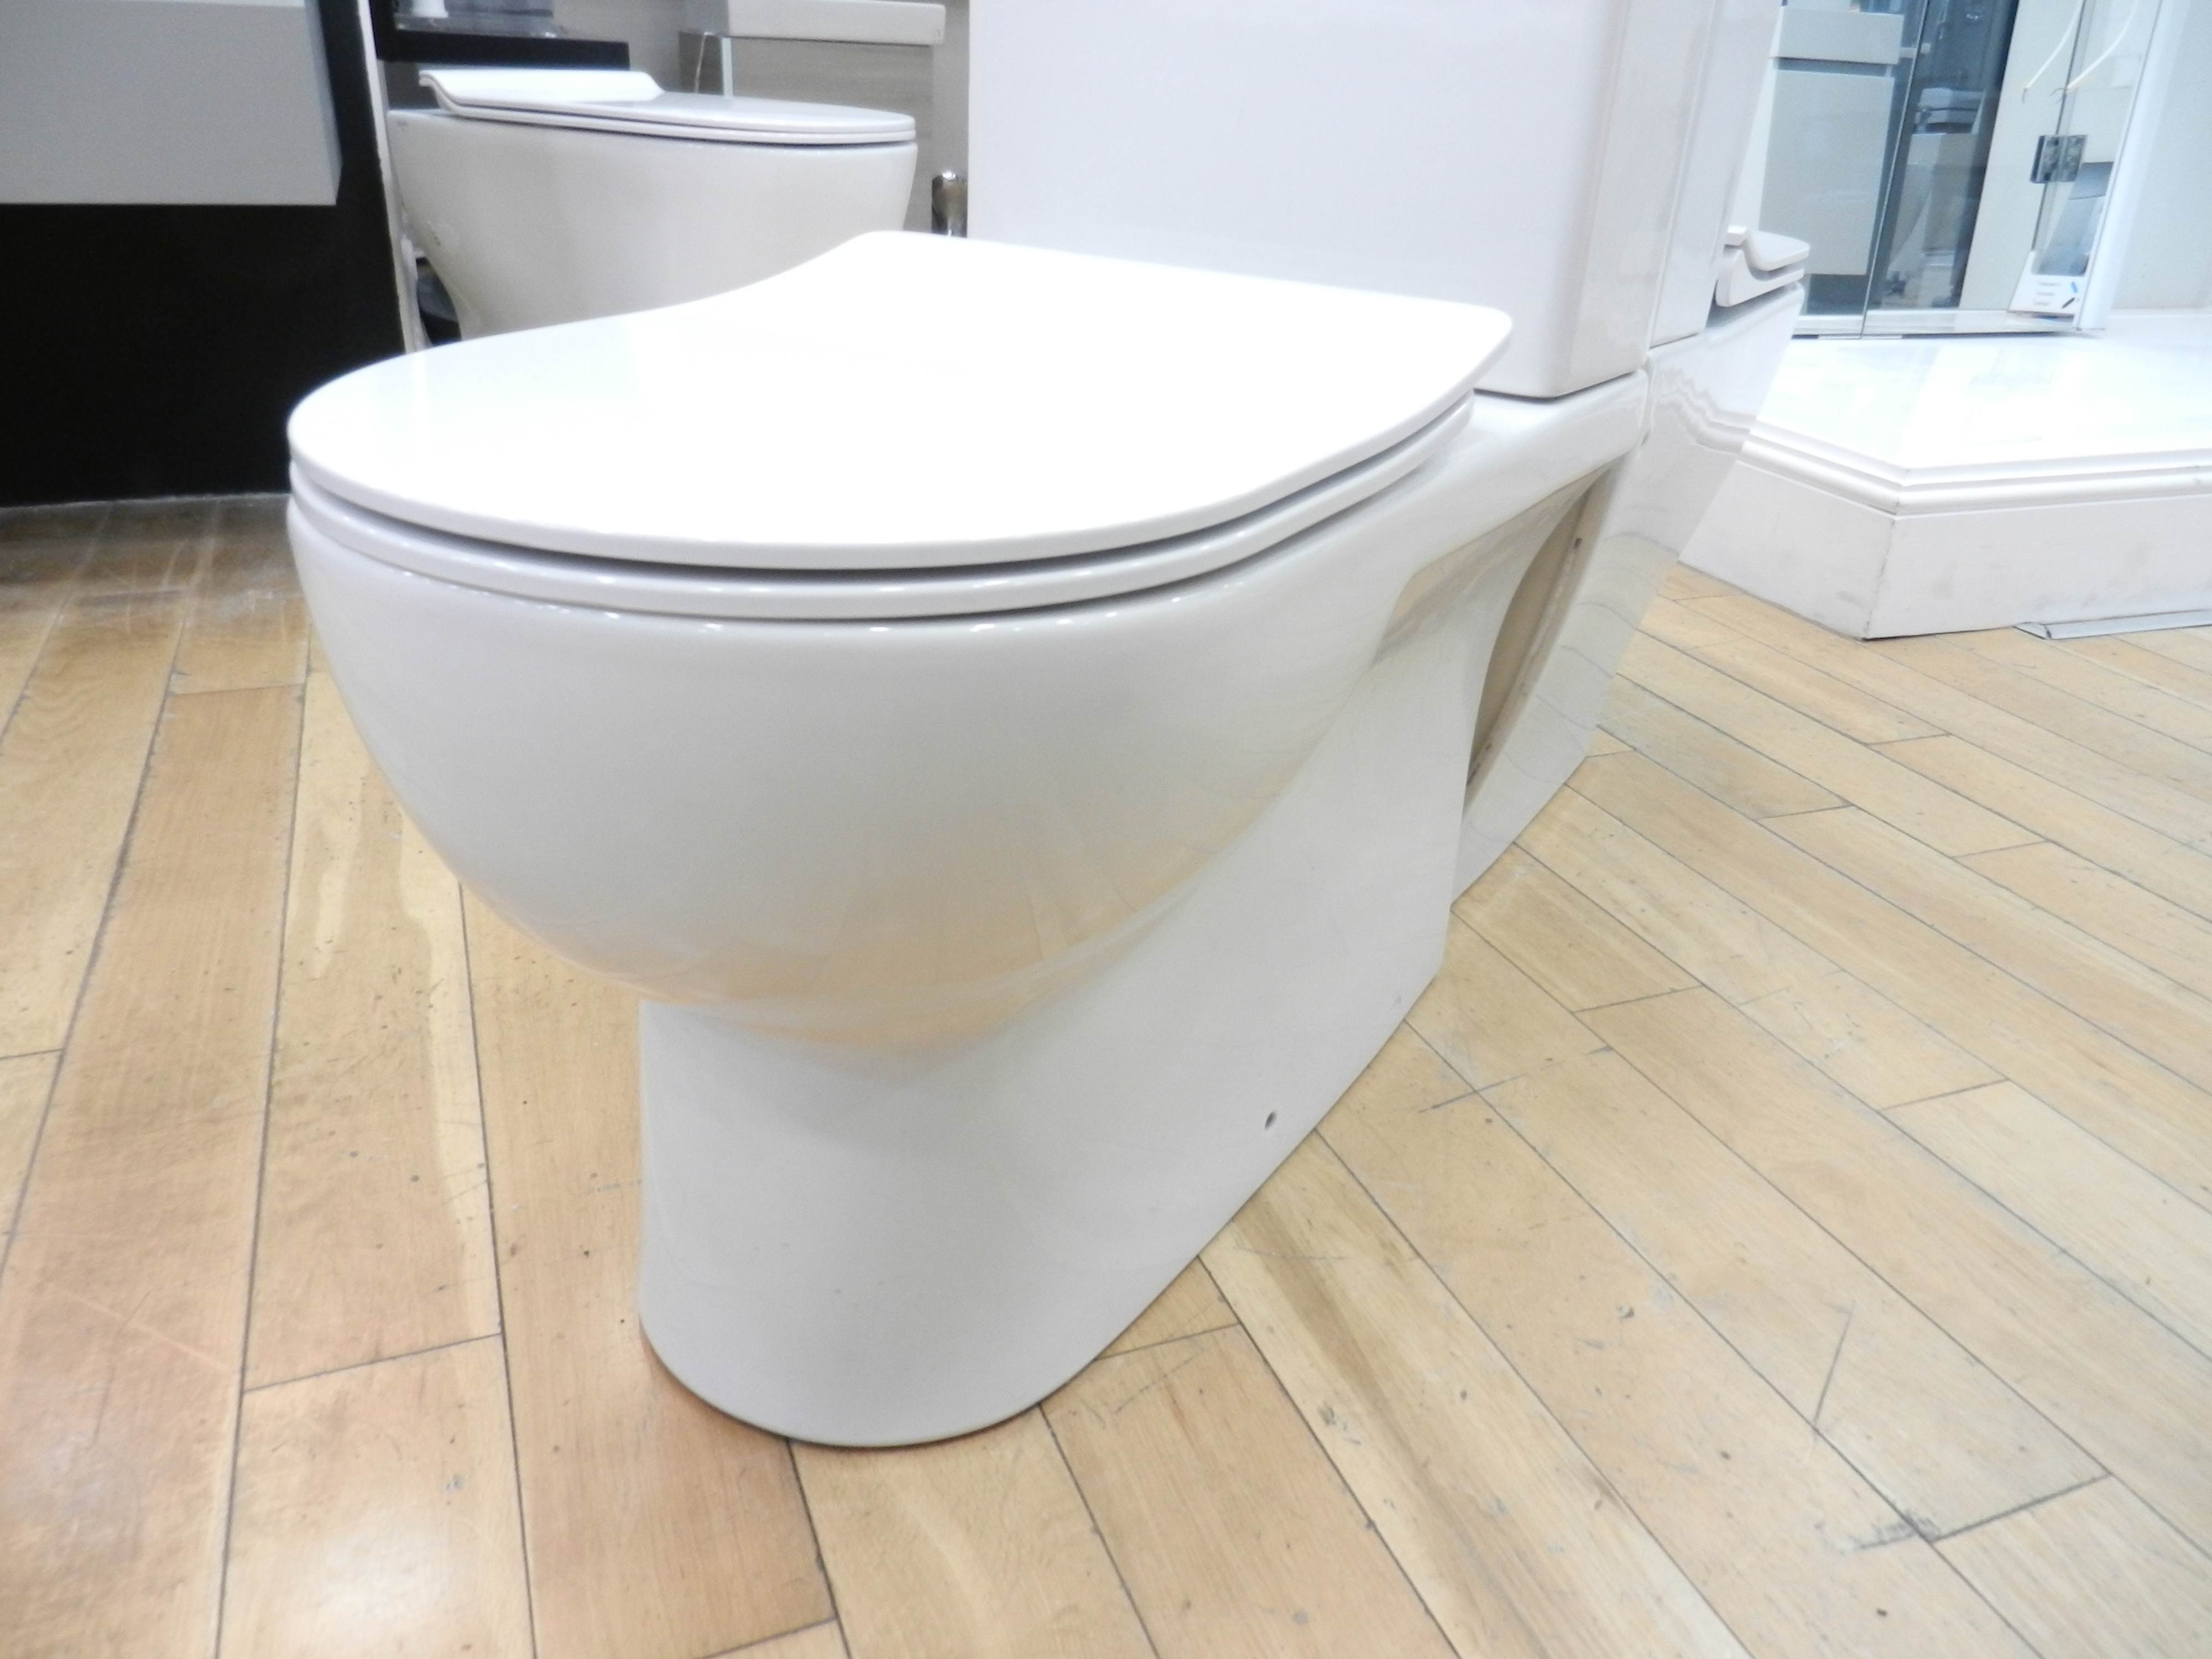 Ex Display Saneux Austen Close Coupled Left Hand Soil Exit Toilet -20887